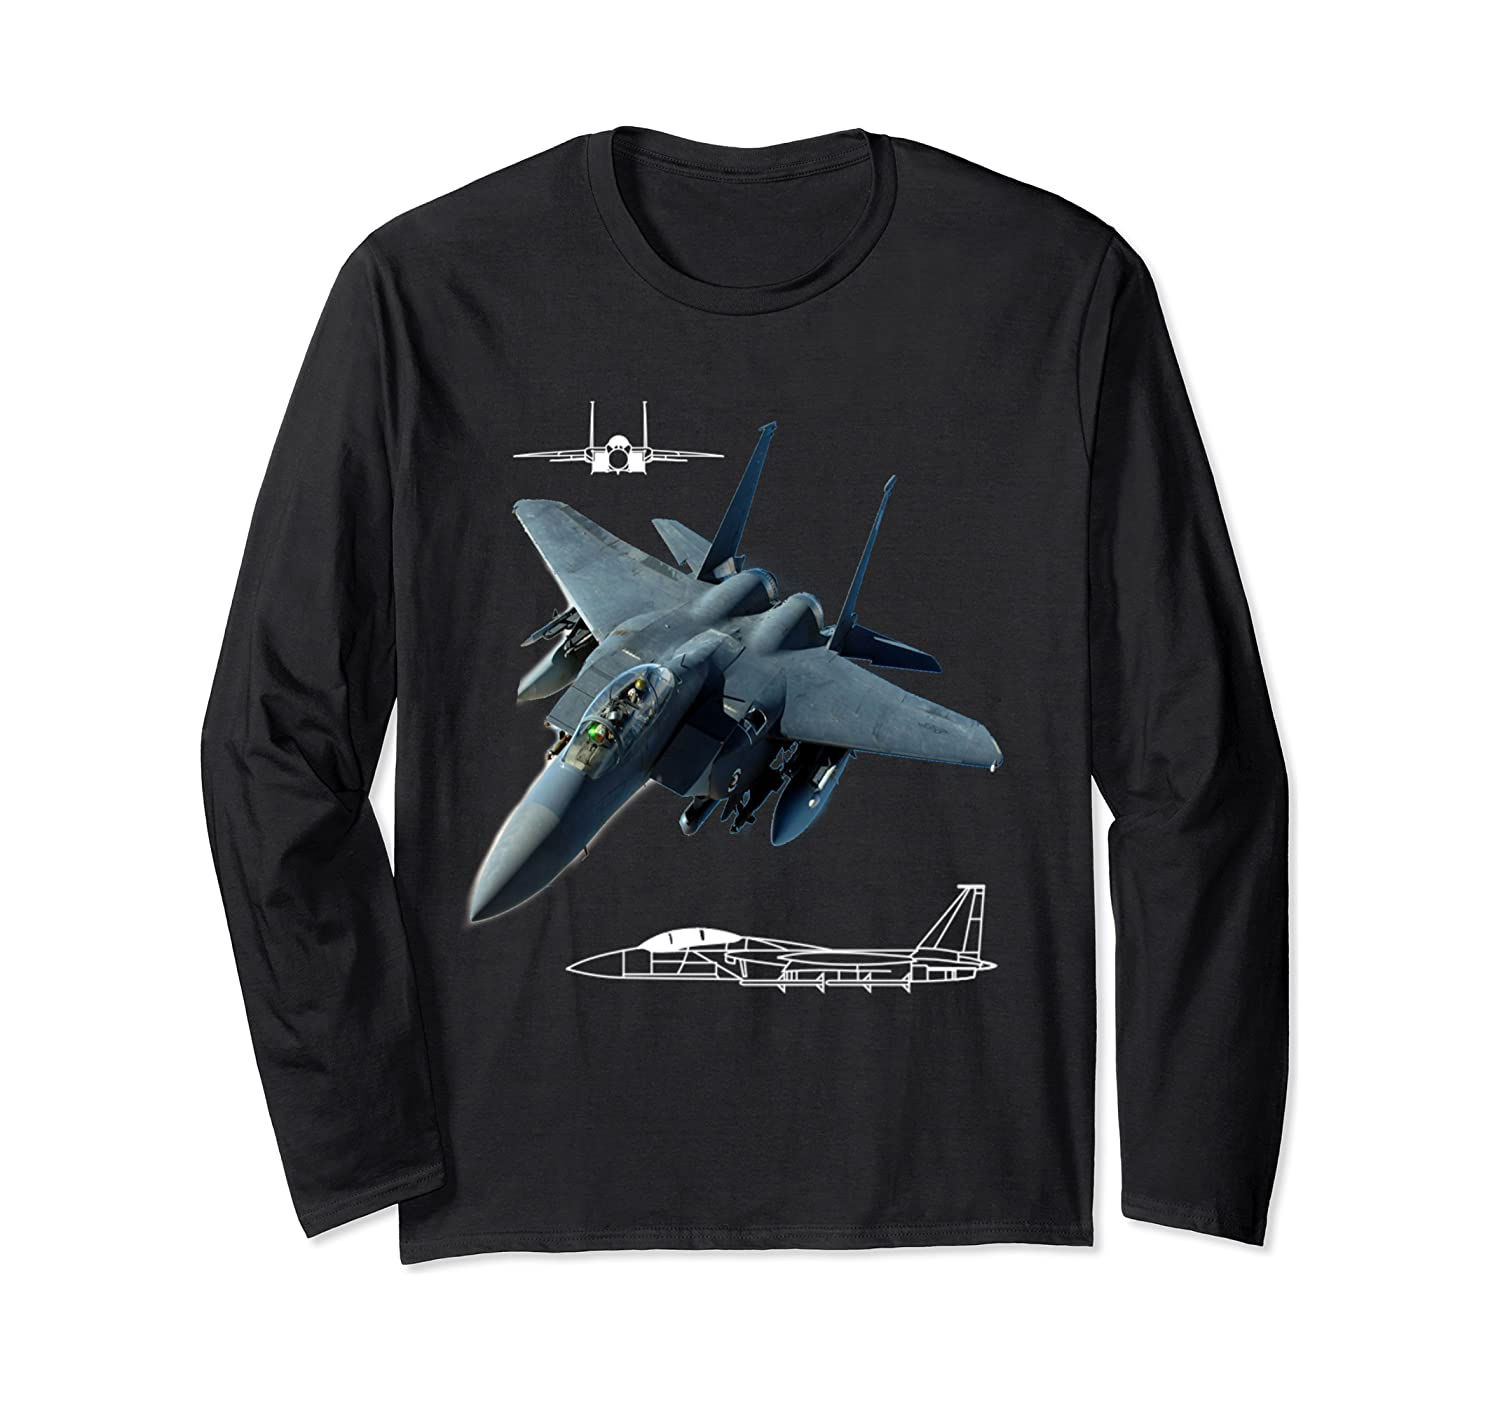 F 15 Eagle Jet Military Stealth Tactical Airplane Shirts